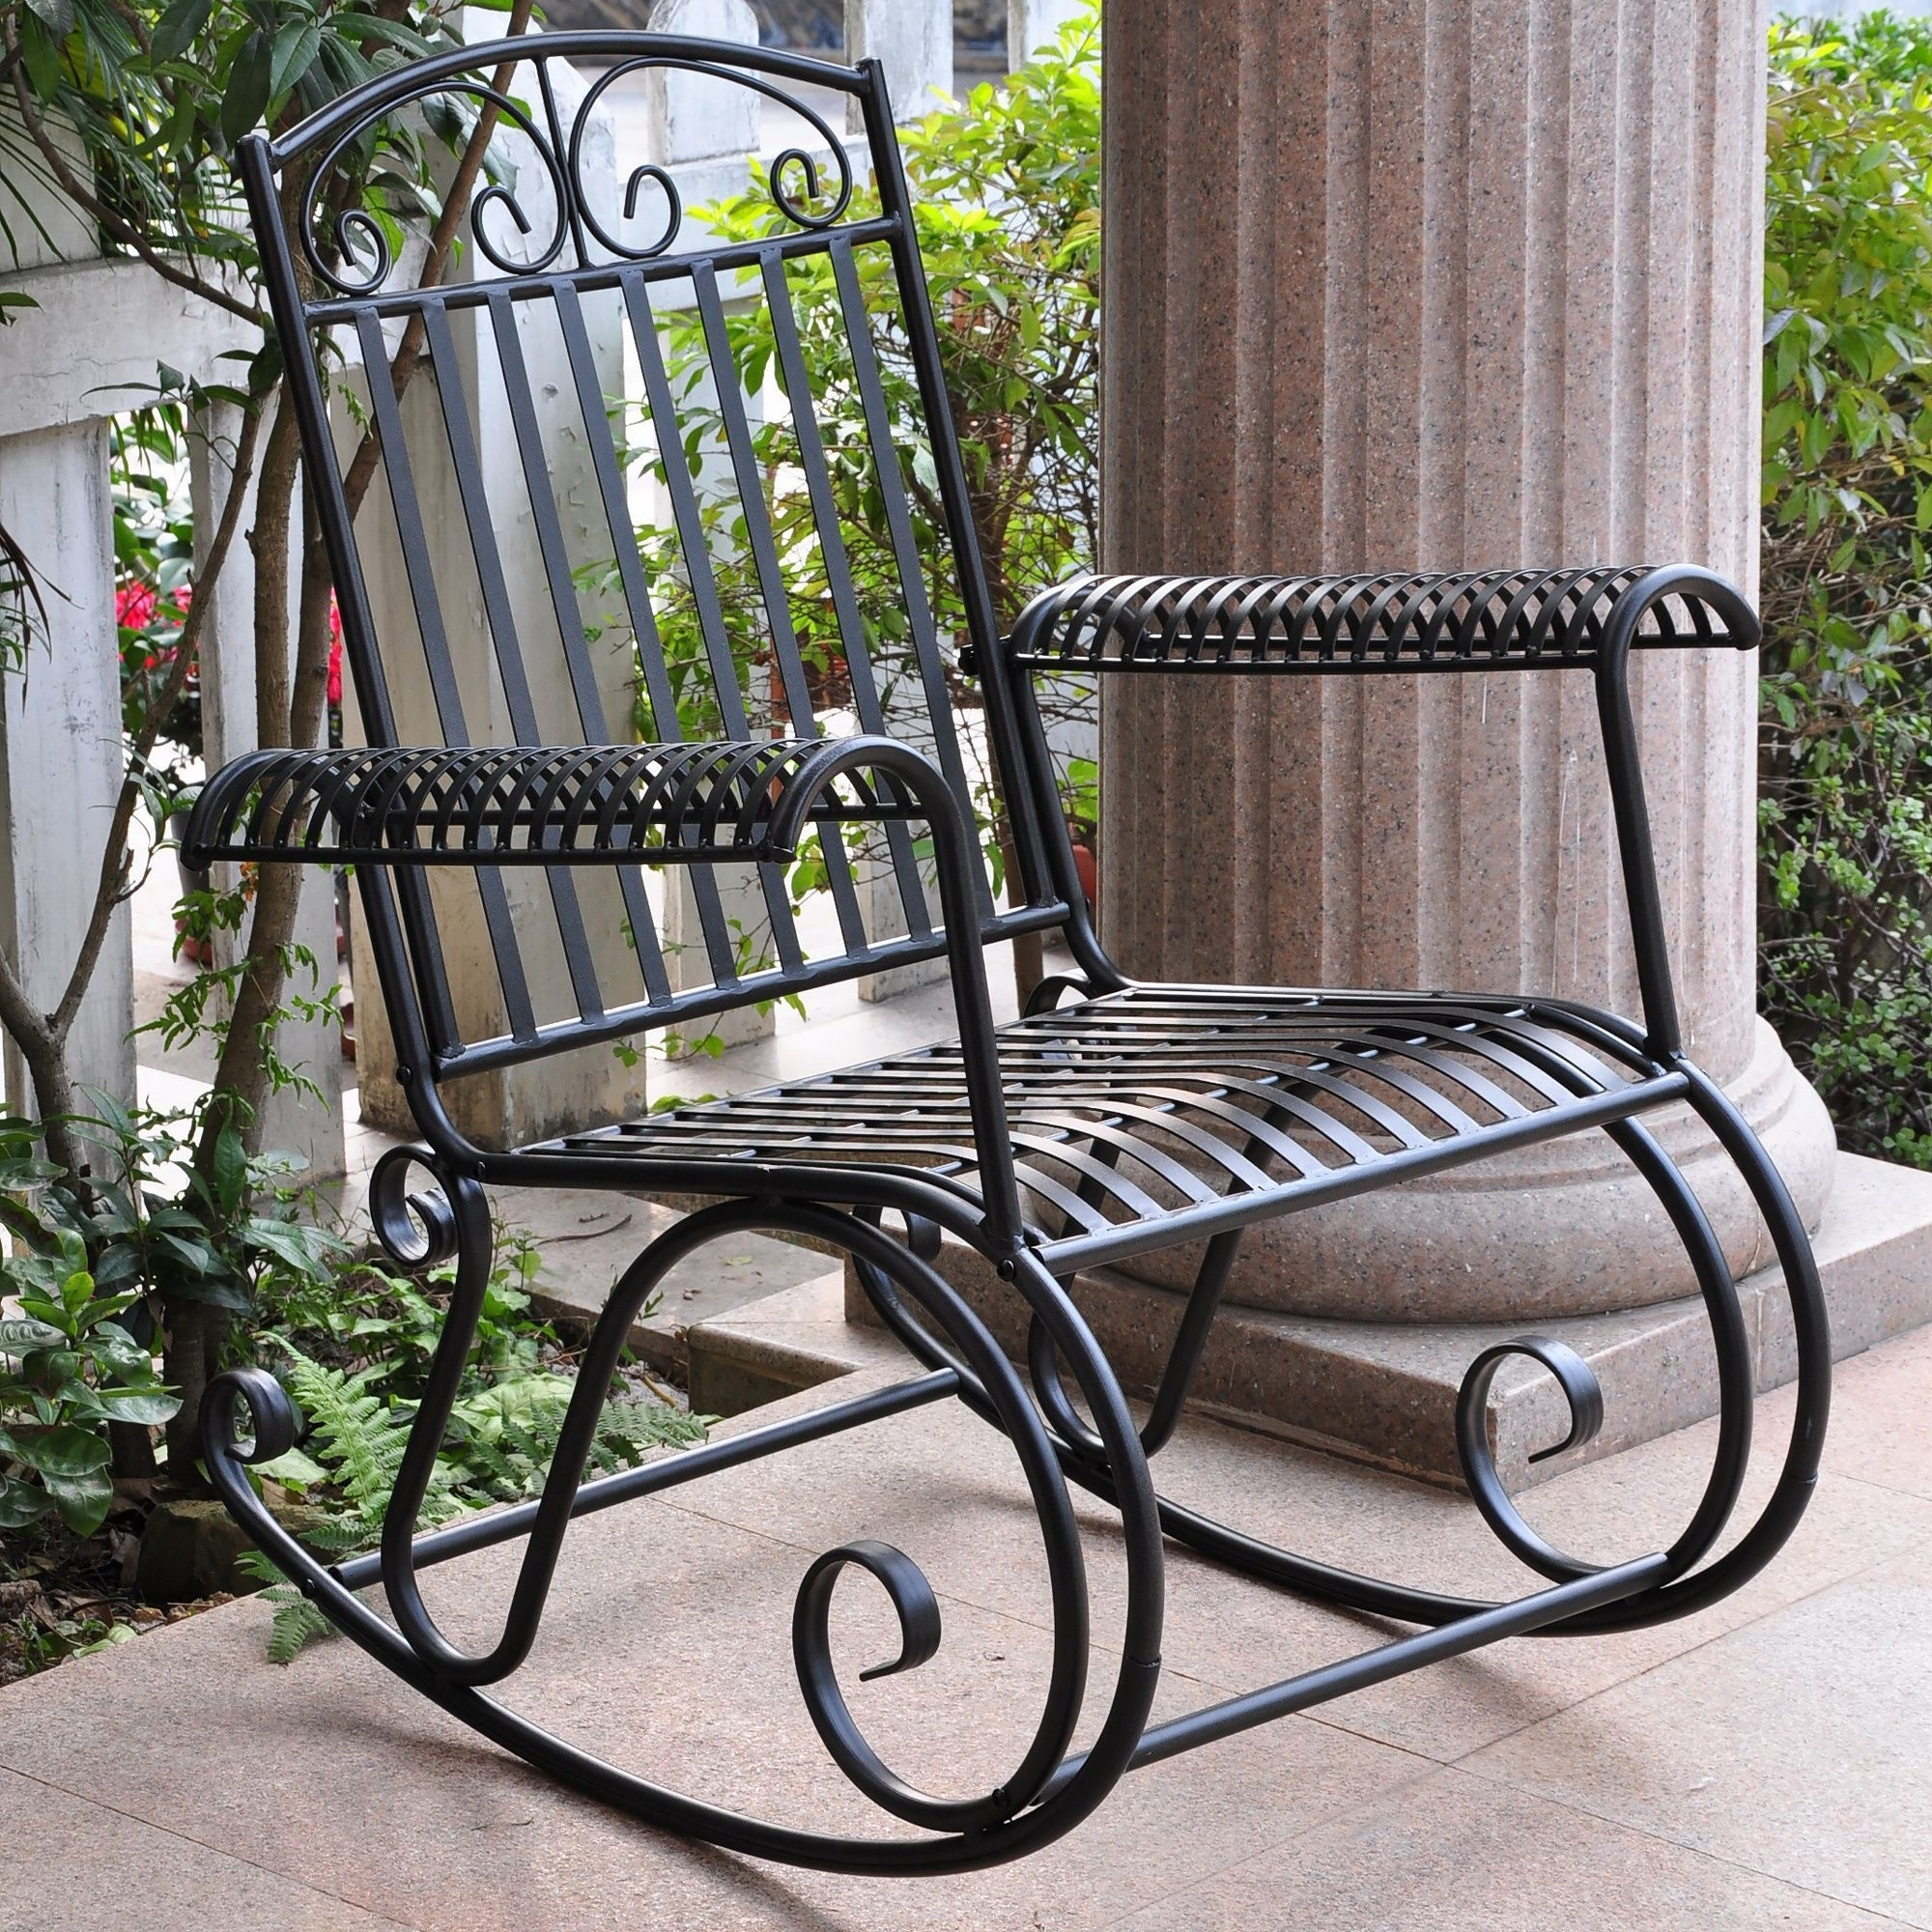 Current Wrought Iron Patio Rocking Chairs For Wrought Iron Chairs With Upholstered Cushions At An Outdoor Seating (View 5 of 20)